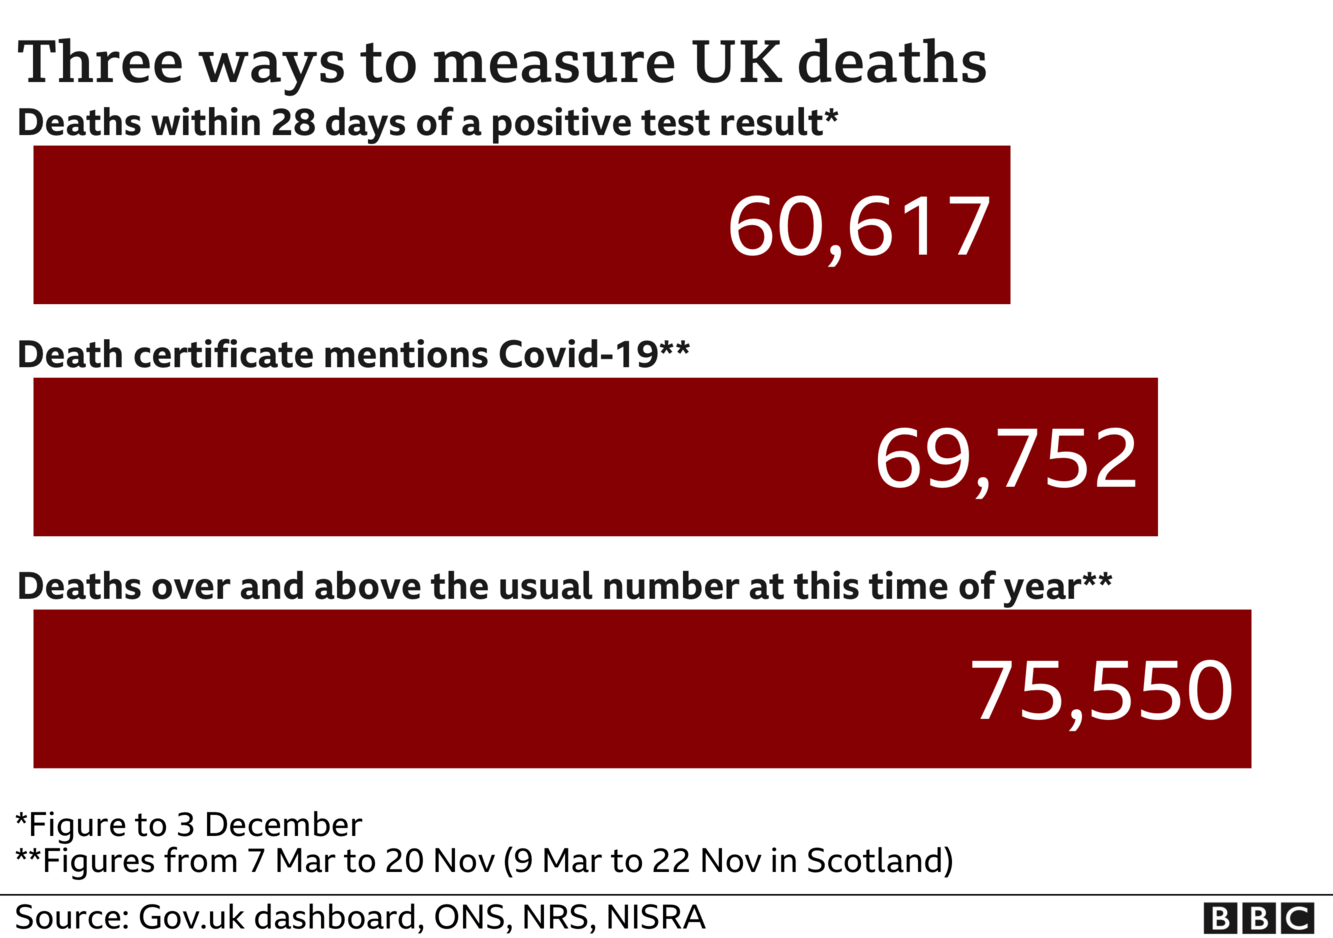 Chart shows three ways of measuring coronavirus deaths - government statistics count everyone who dies within 28 days of a positive test, the total is now 60,617. ONS stats include everyone where coronavirus was mentioned on the death certificate and that total is now 69,752. The final total includes all excess deaths over and above the usual number and that is now 75,550